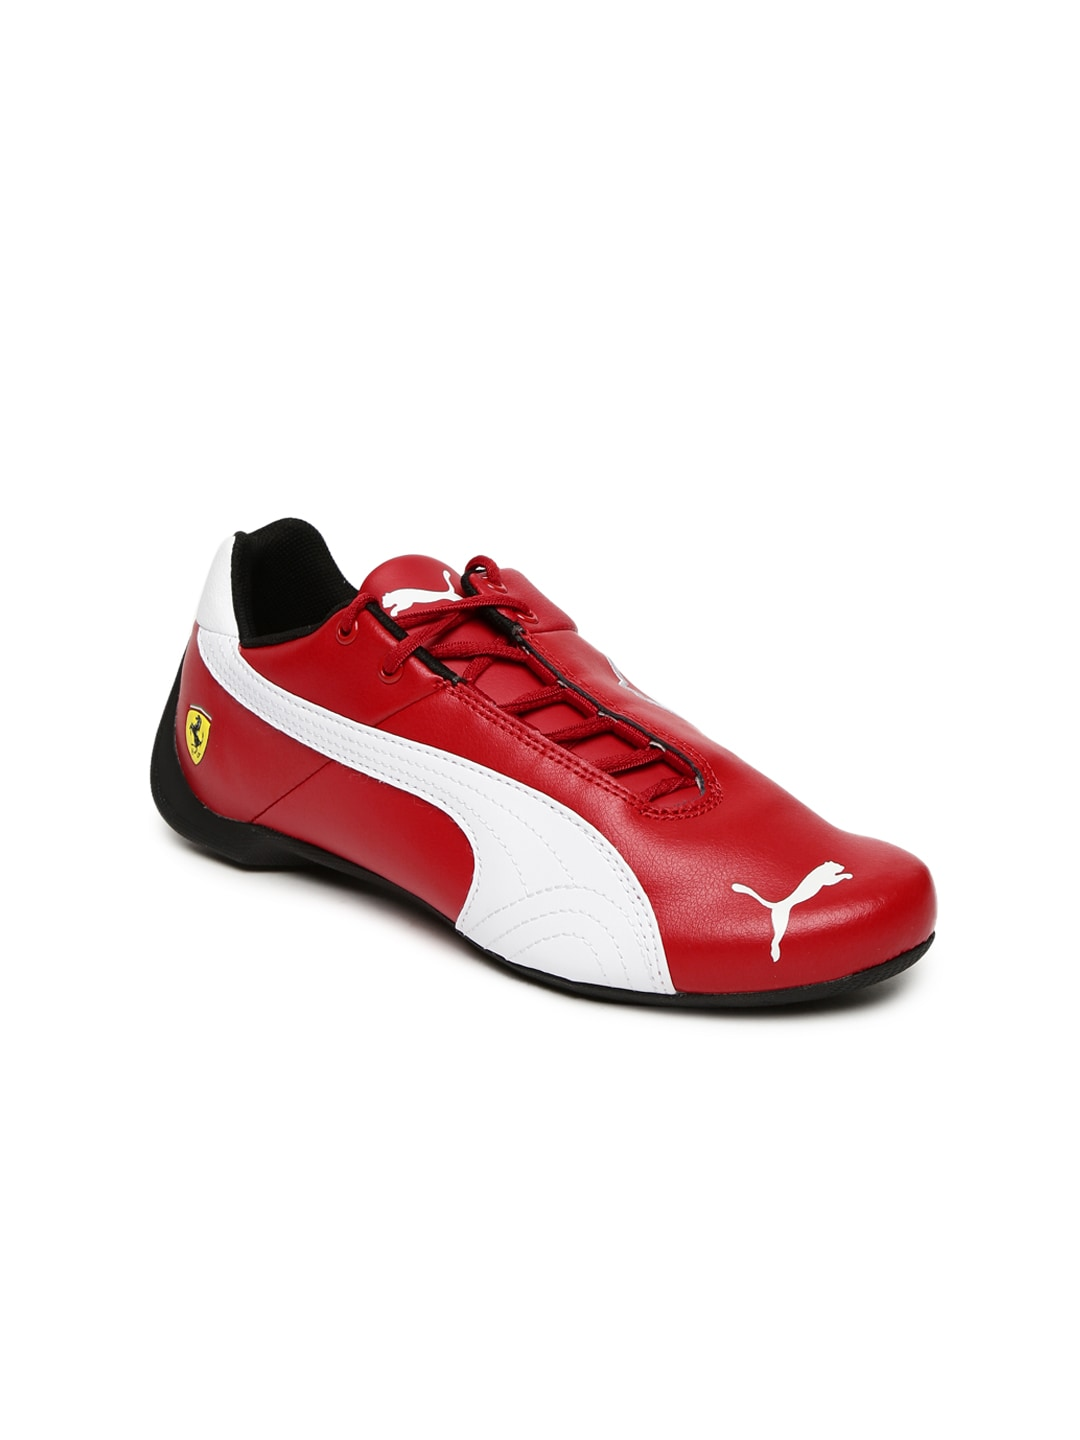 e786e037b443 Red Shoes - Buy Red Shoes online in India